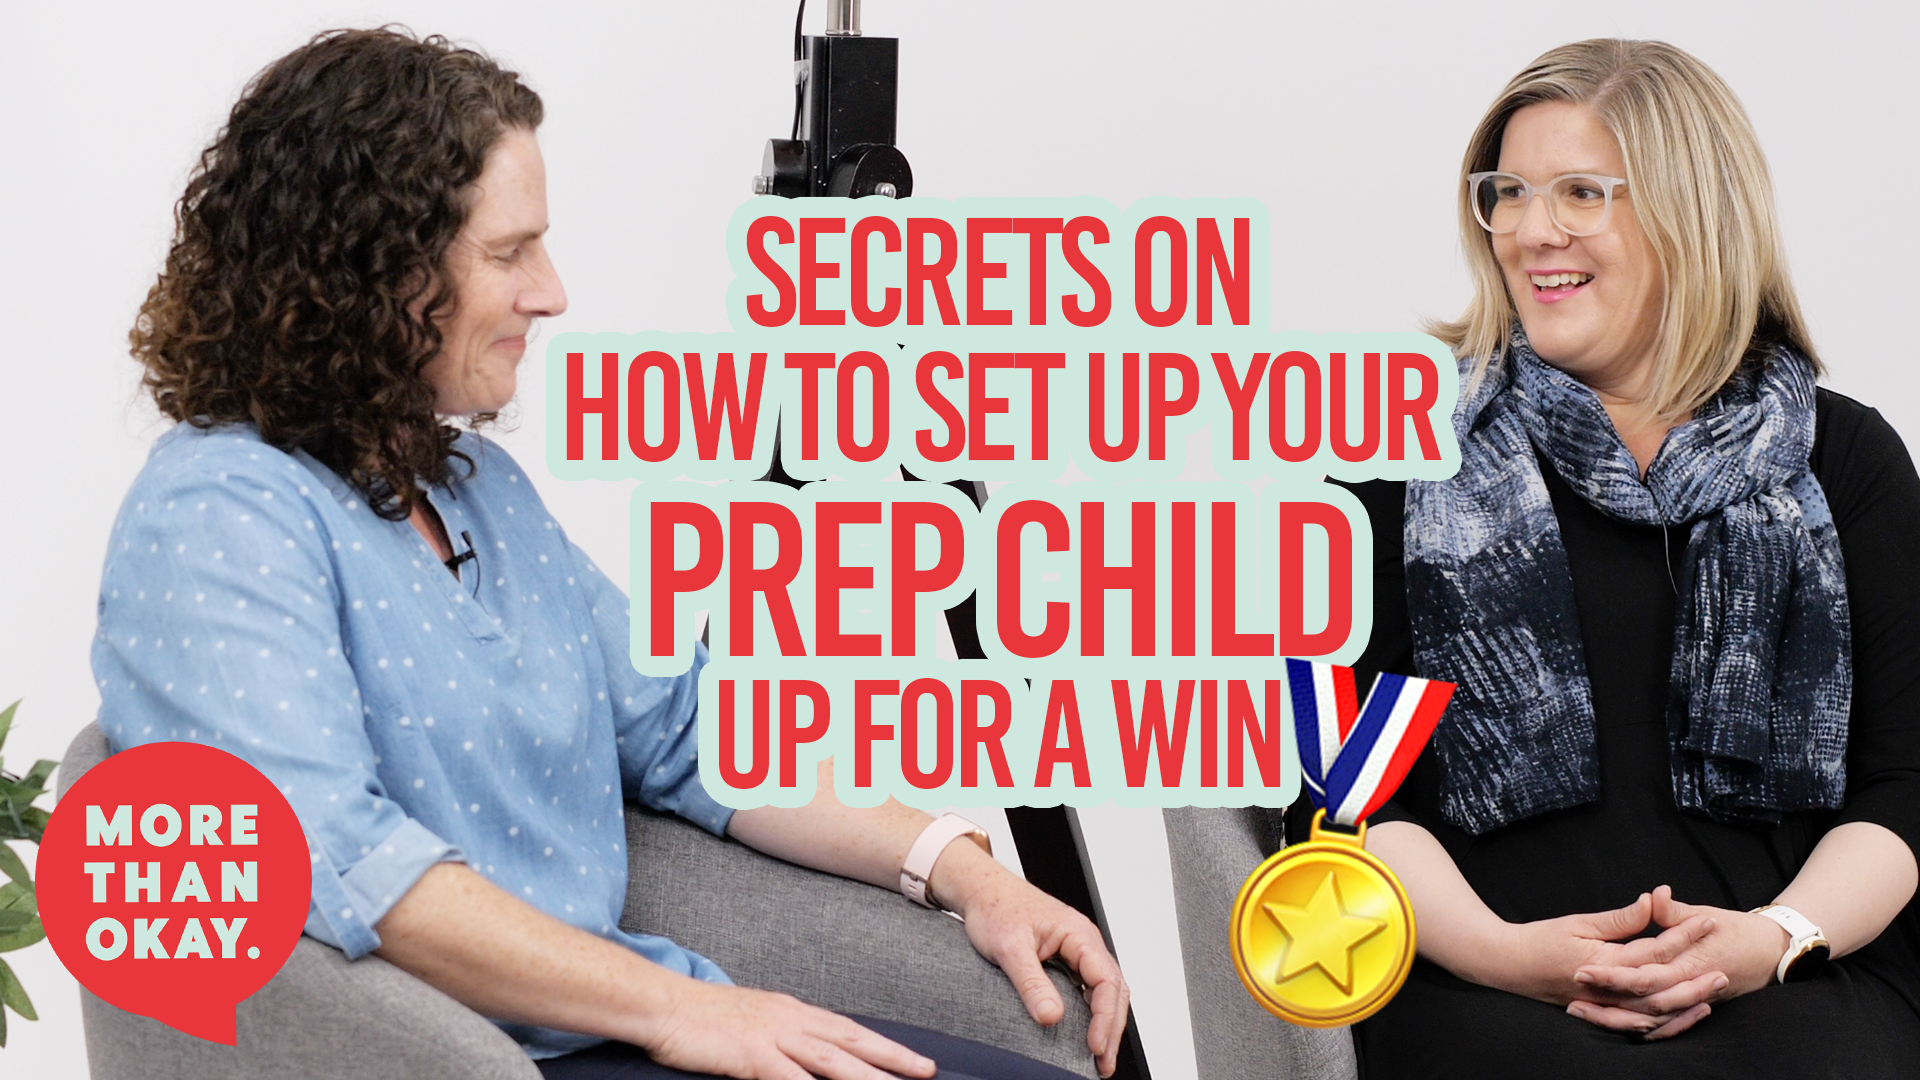 Secrets on how to set up your prep child for a win